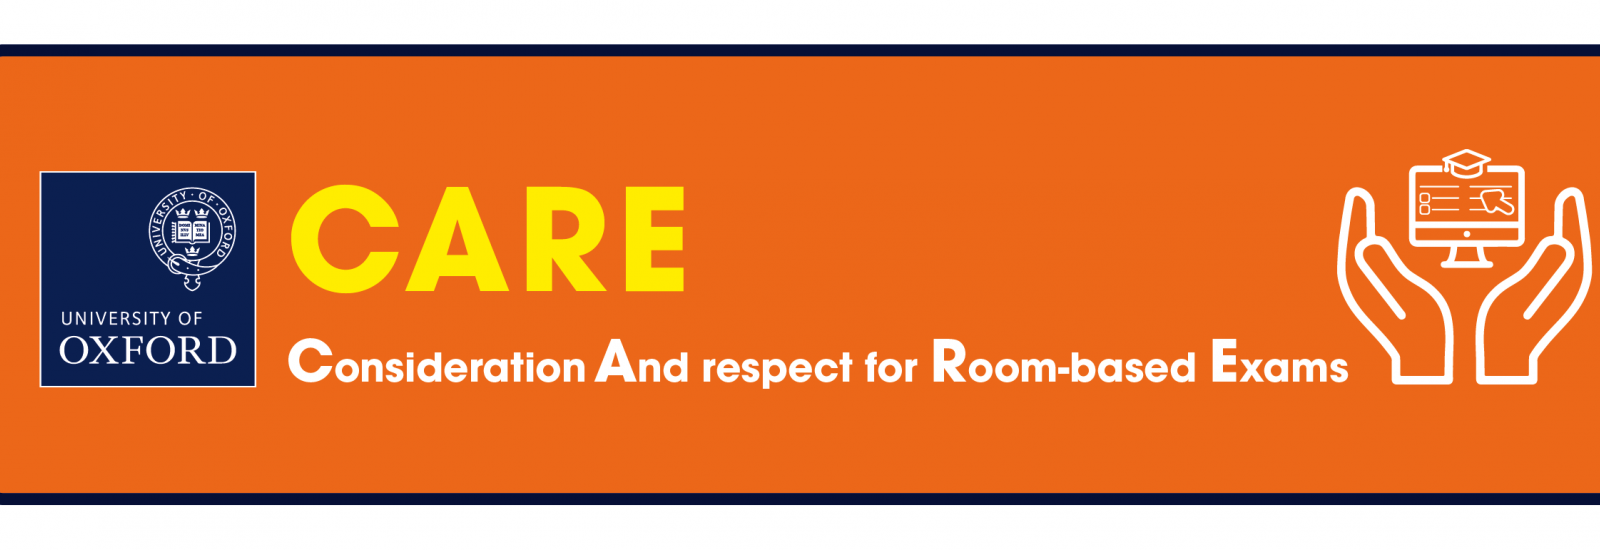 CARE -  consideration and respect for room-based exams